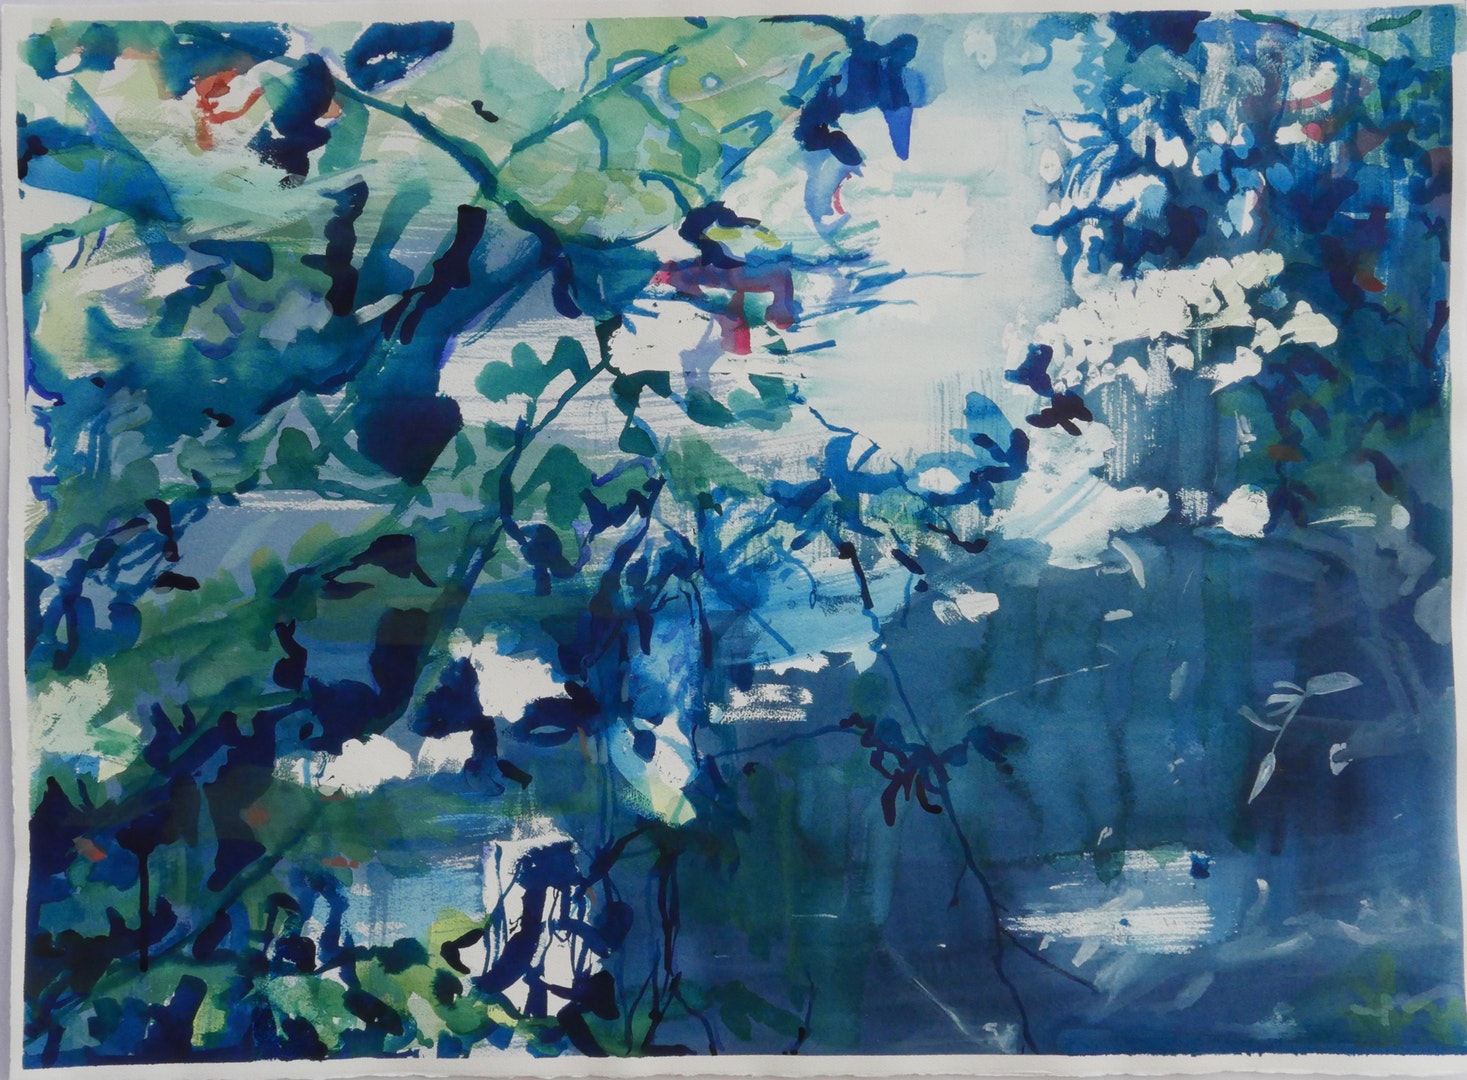 'Traces of the Wild Garden', Katie Lenegan, Watercolour on paper, 71 x 90 cm